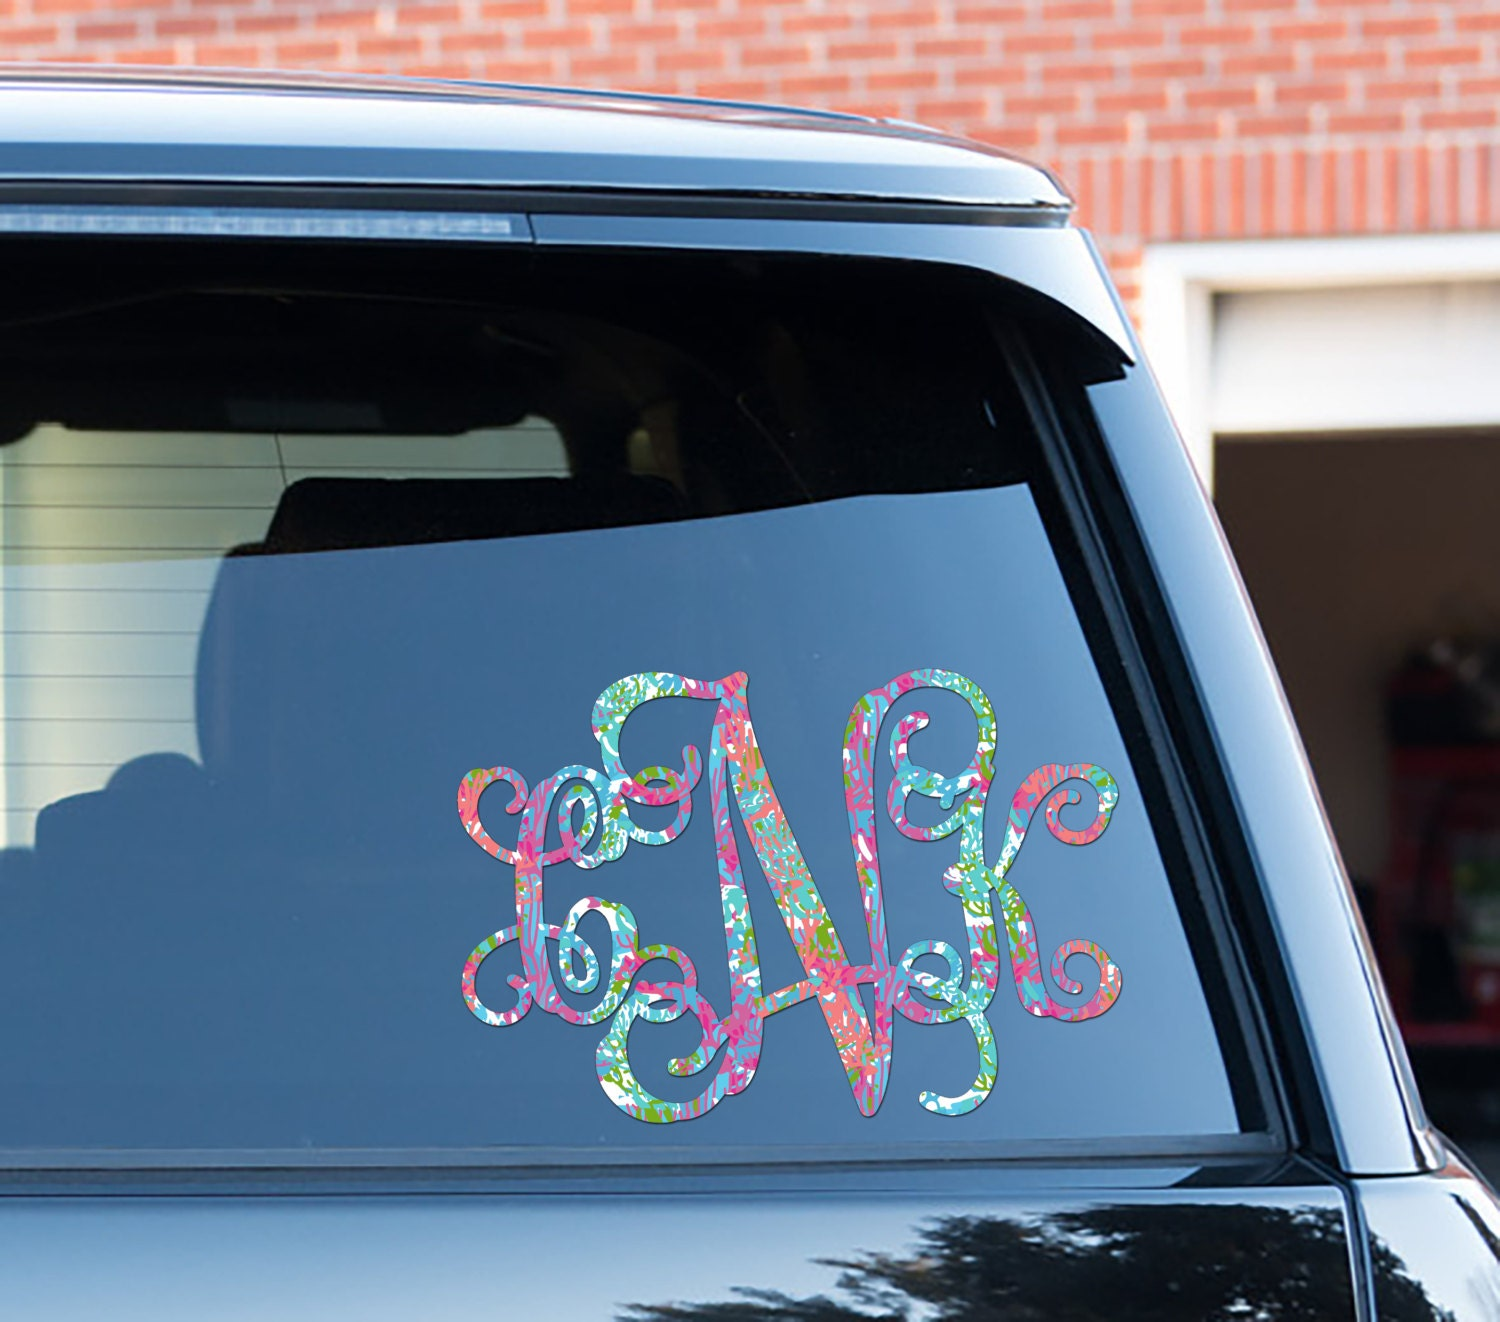 Monogram Car Decal Car Stickers Car Decor Cute Car Accessories